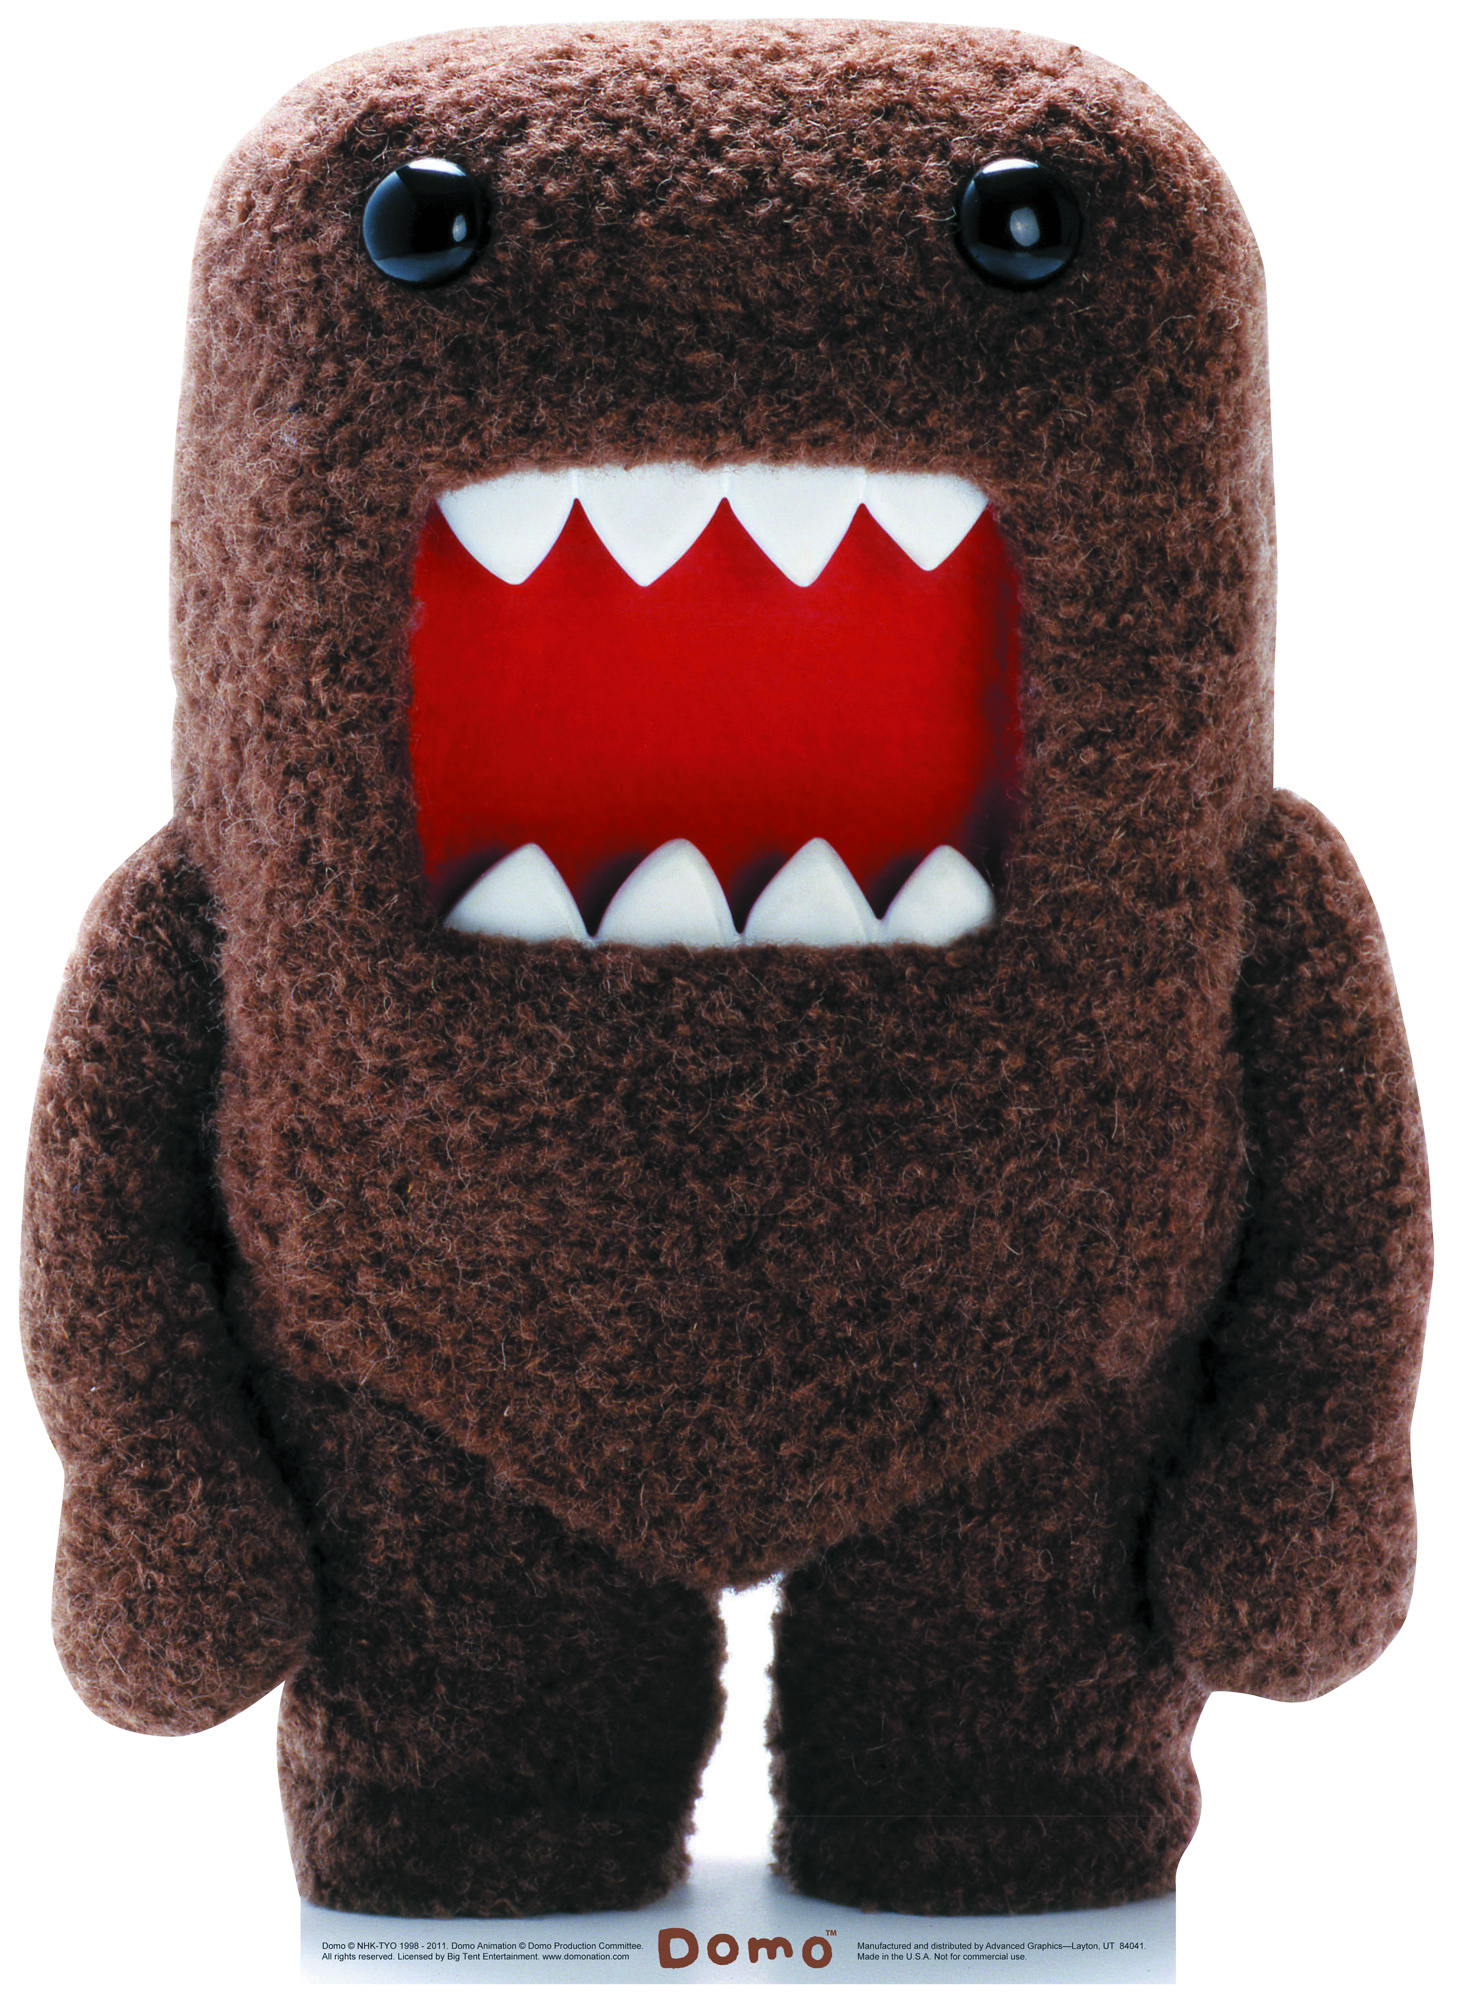 DOMO LIFE-SIZE STANDUP